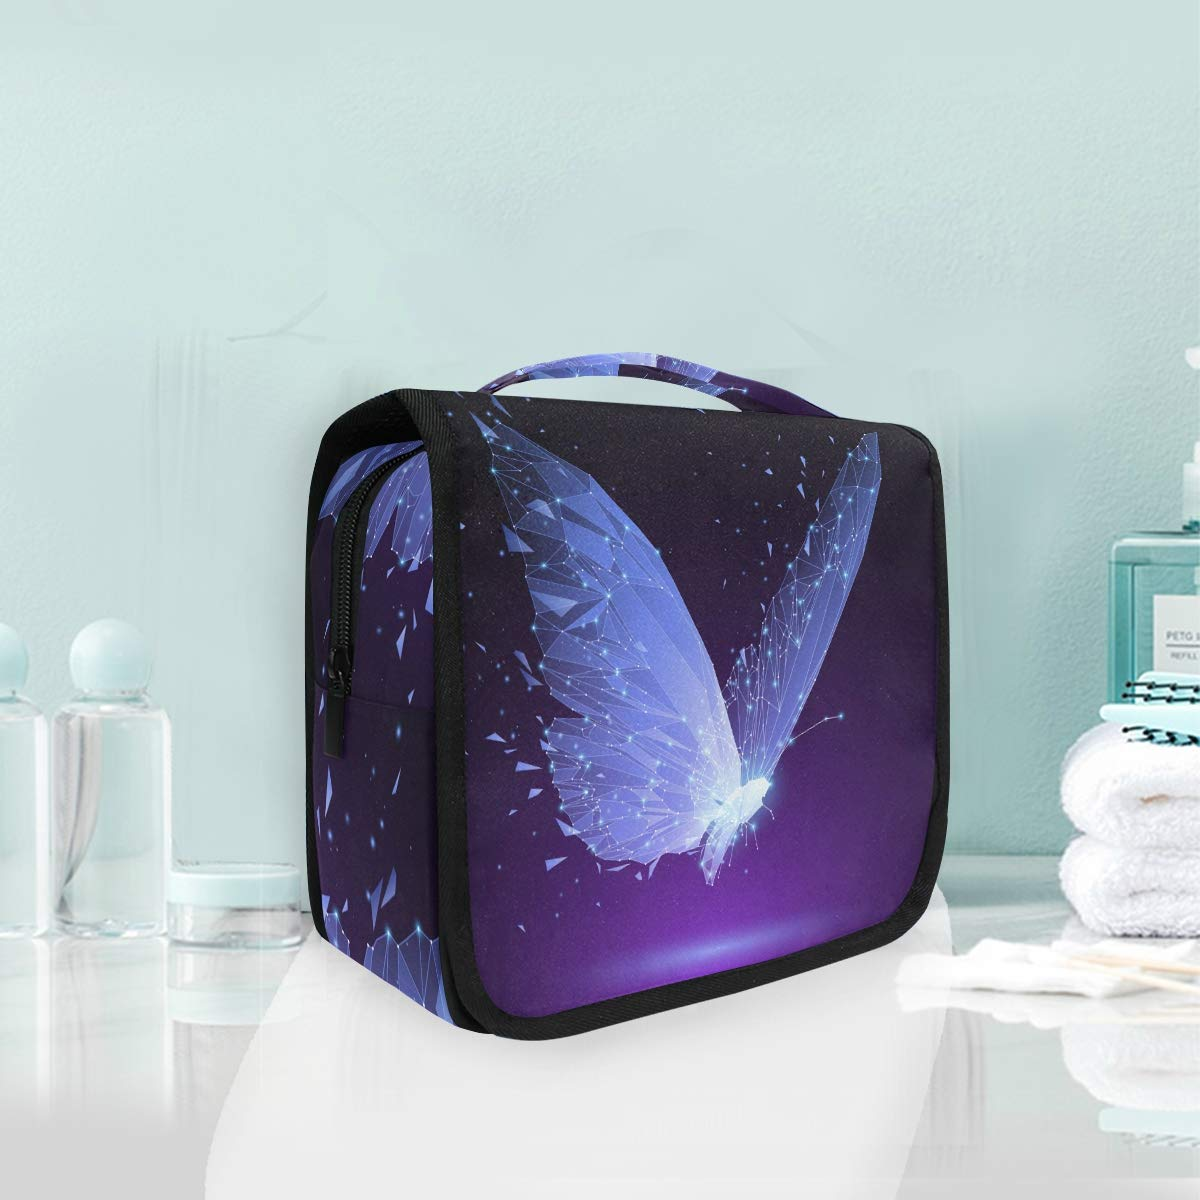 Toiletry Bag Hanging Travel Cosmetic Bag Large Capacity Portable Makeup Bag Purple Butterfly Organizer Pouch for Women Girls